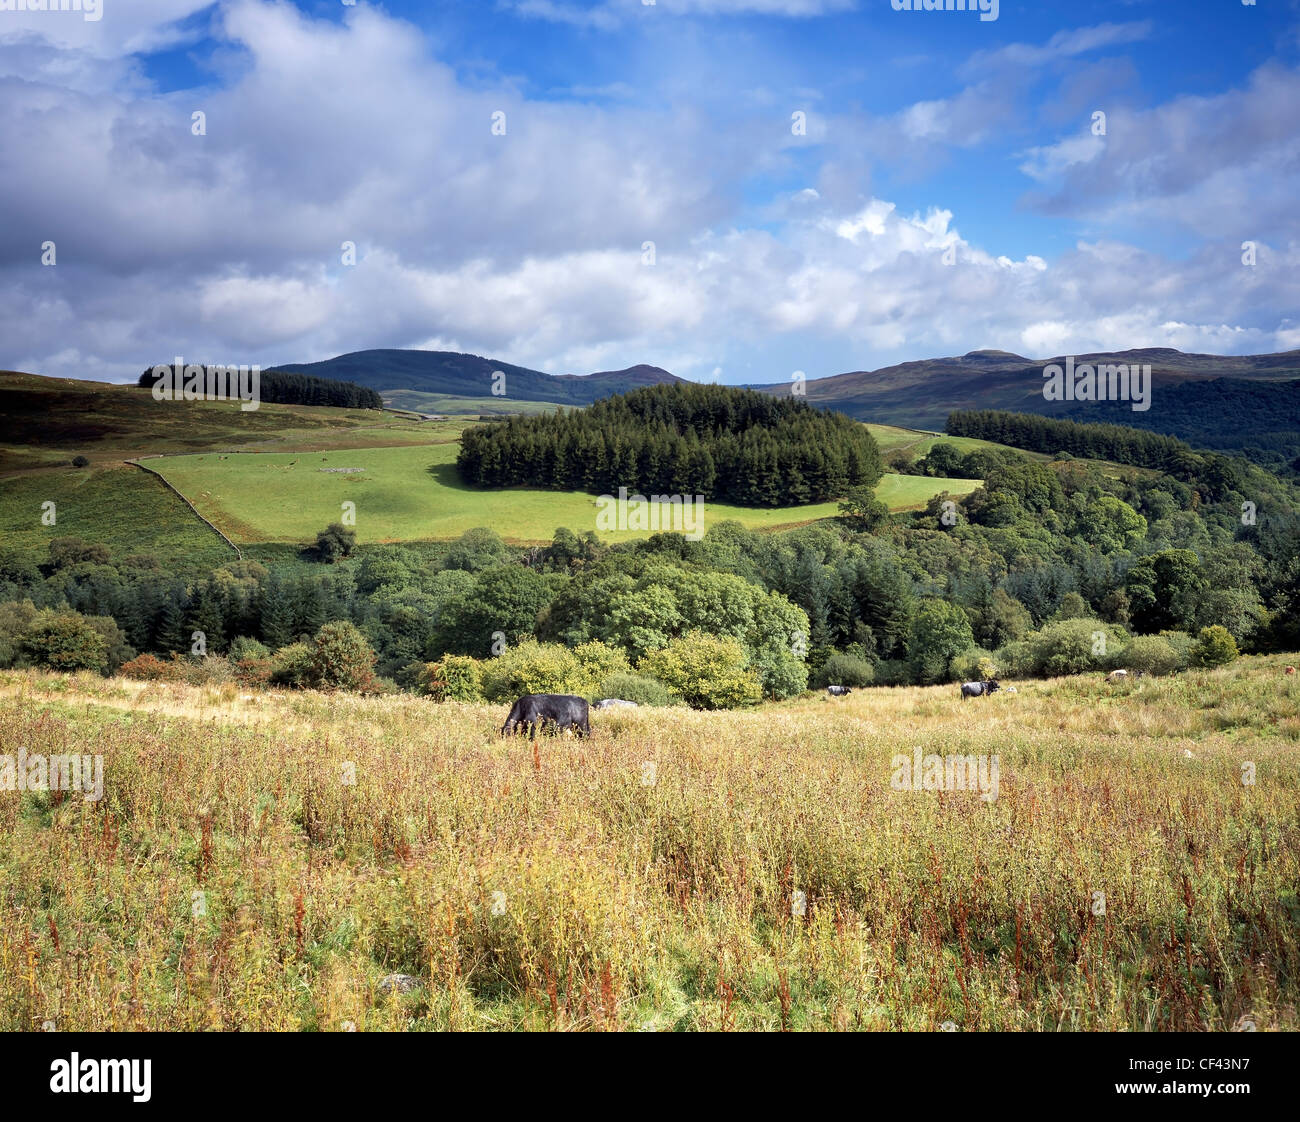 Cattle grazing on the rolling hills and fields of south-west Scotland. - Stock Image